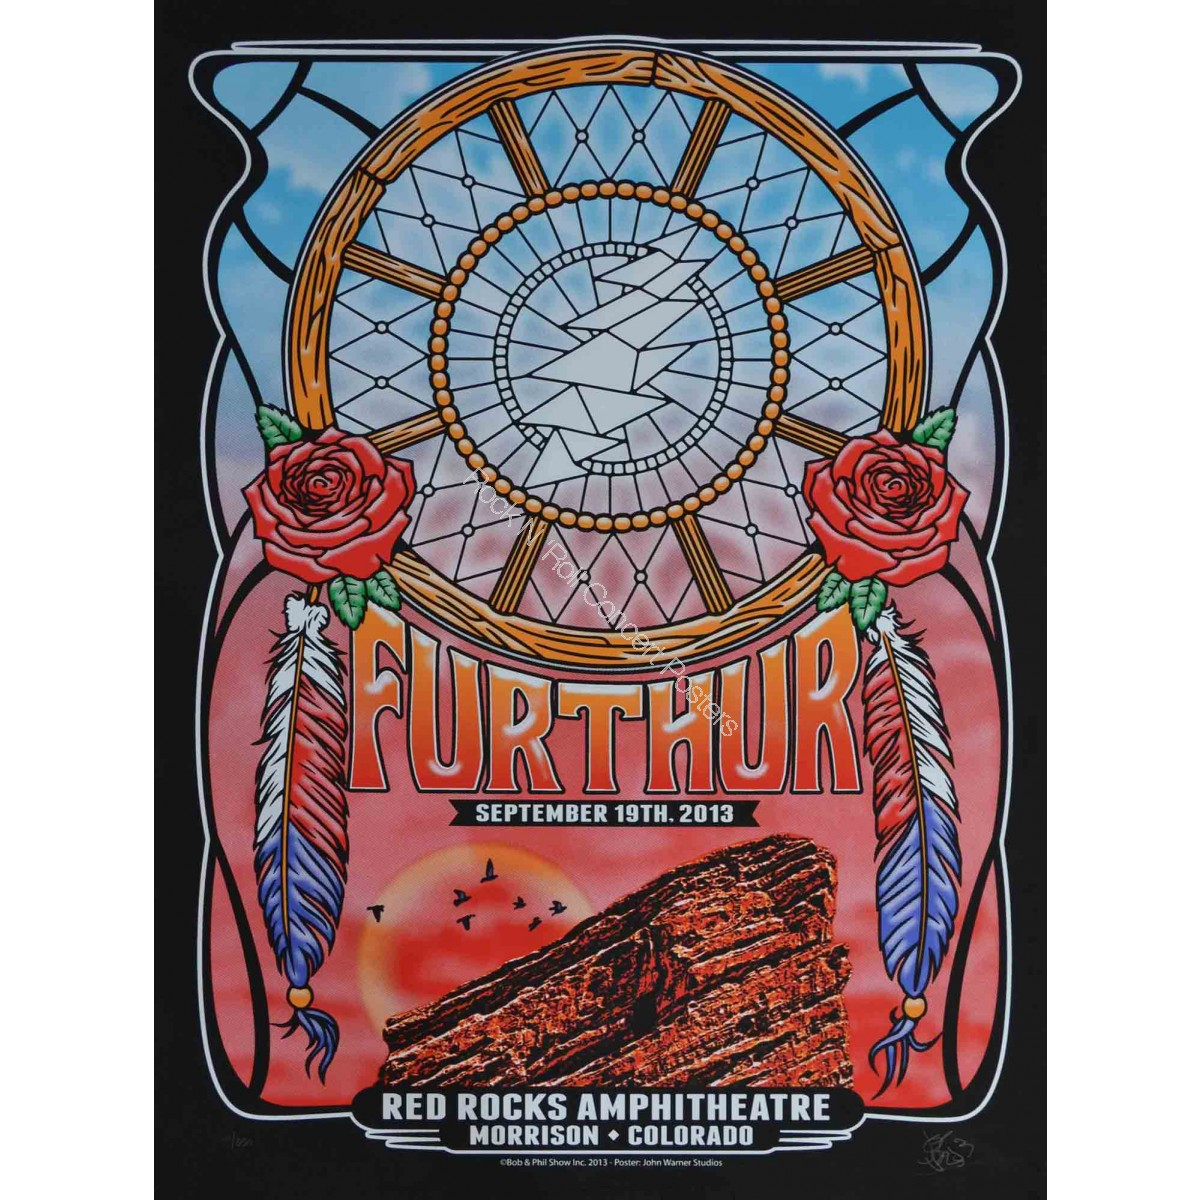 Furthur (Grateful Dead) Red Rocks Amphitheatre September 19th 2013 Night 1 Show Edition